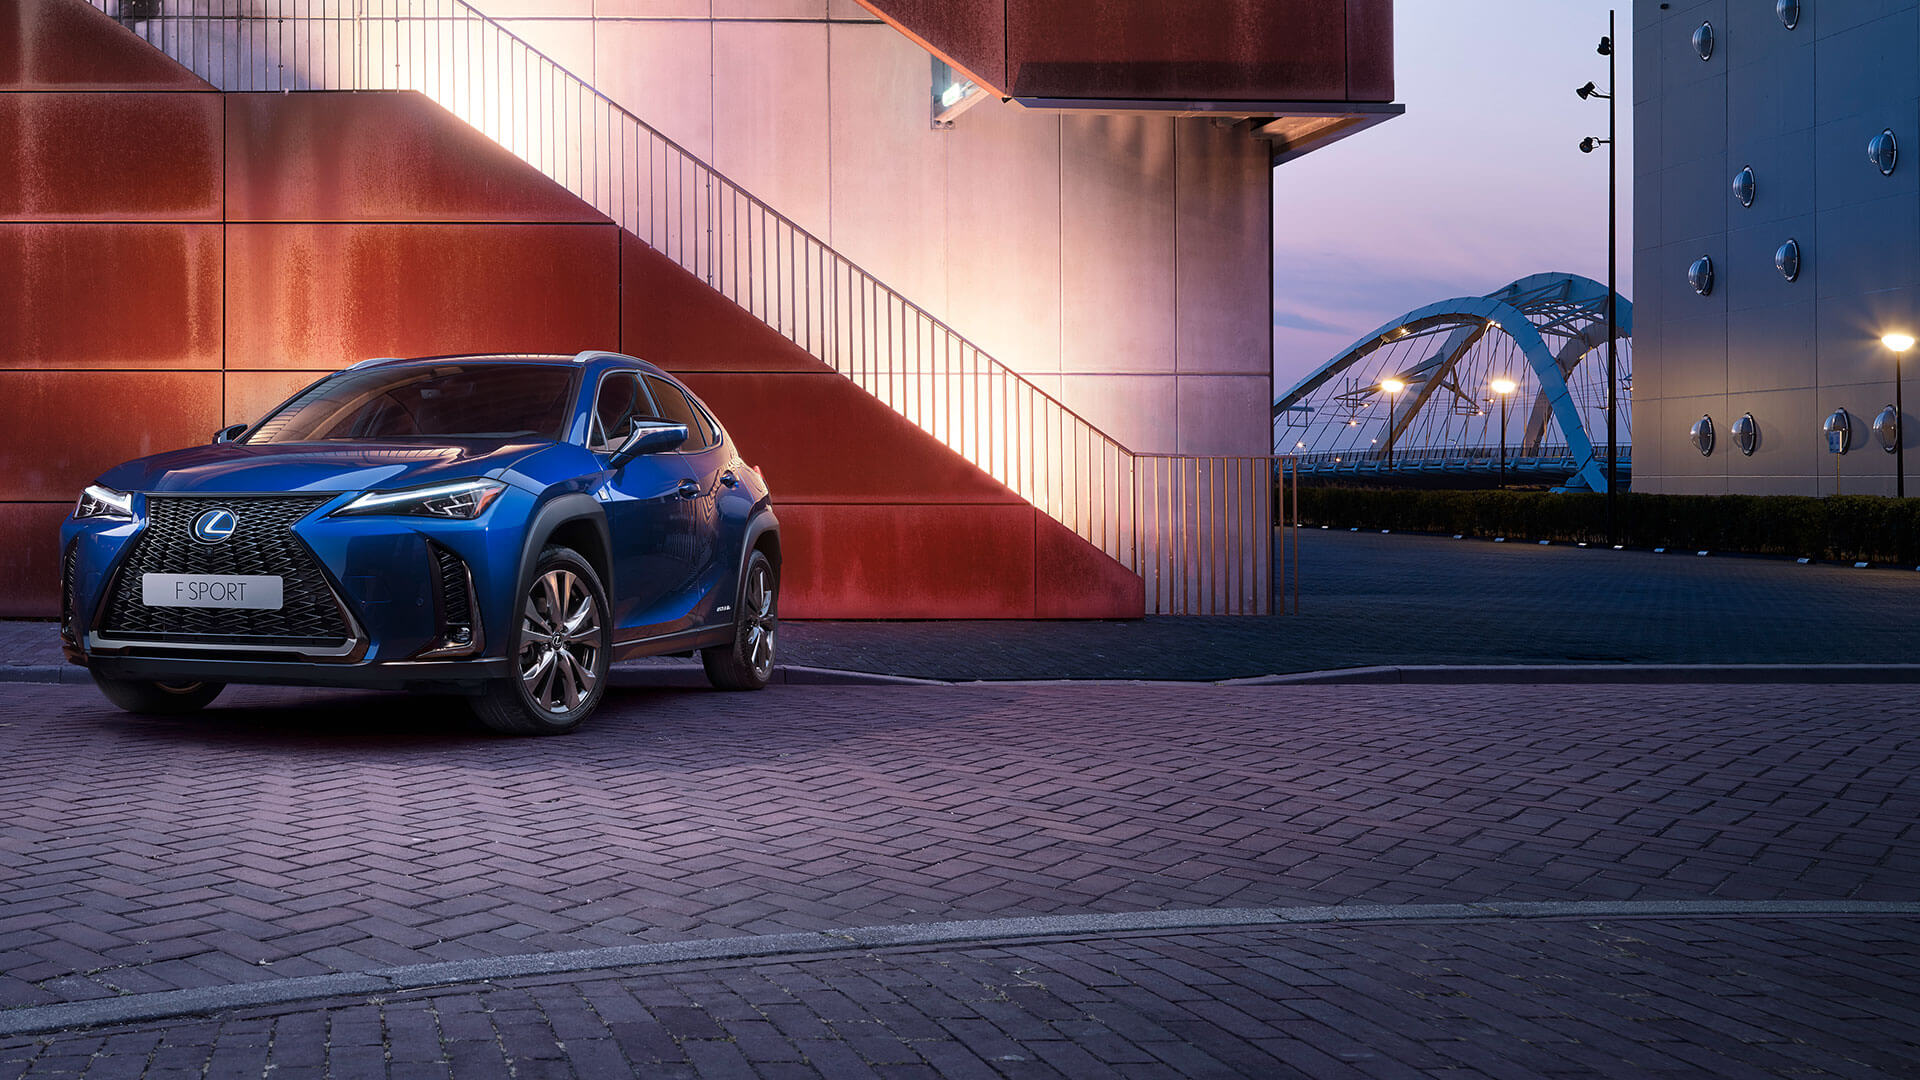 2019 lexus ux presales key features 1920x1080 v2